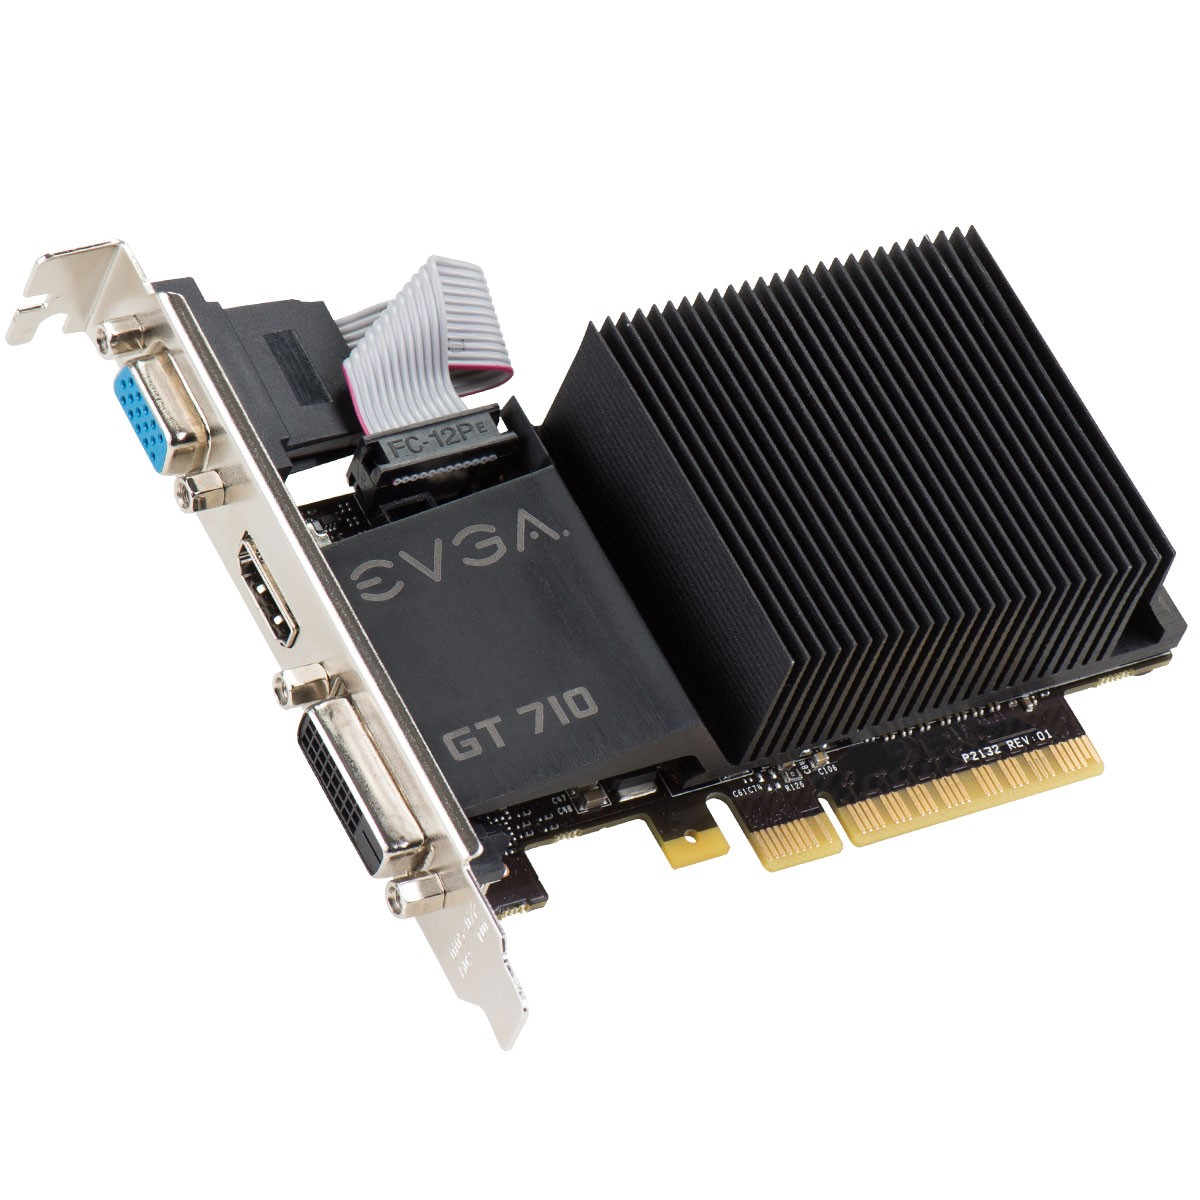 EVGA GeForce GT 710 passiv